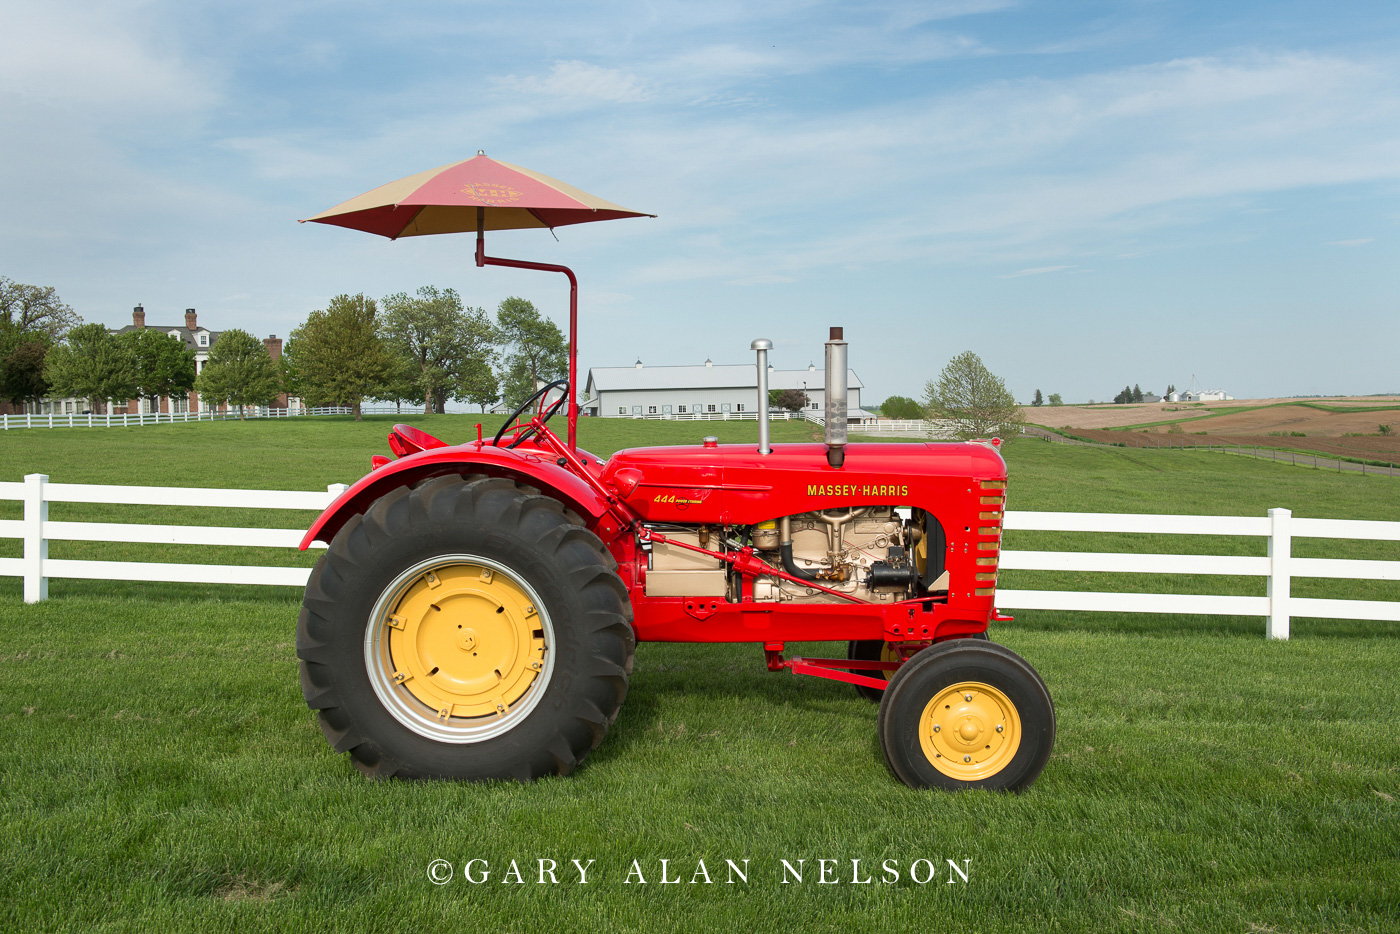 Massey-Harris, antique tractor, vintage tractor, photo